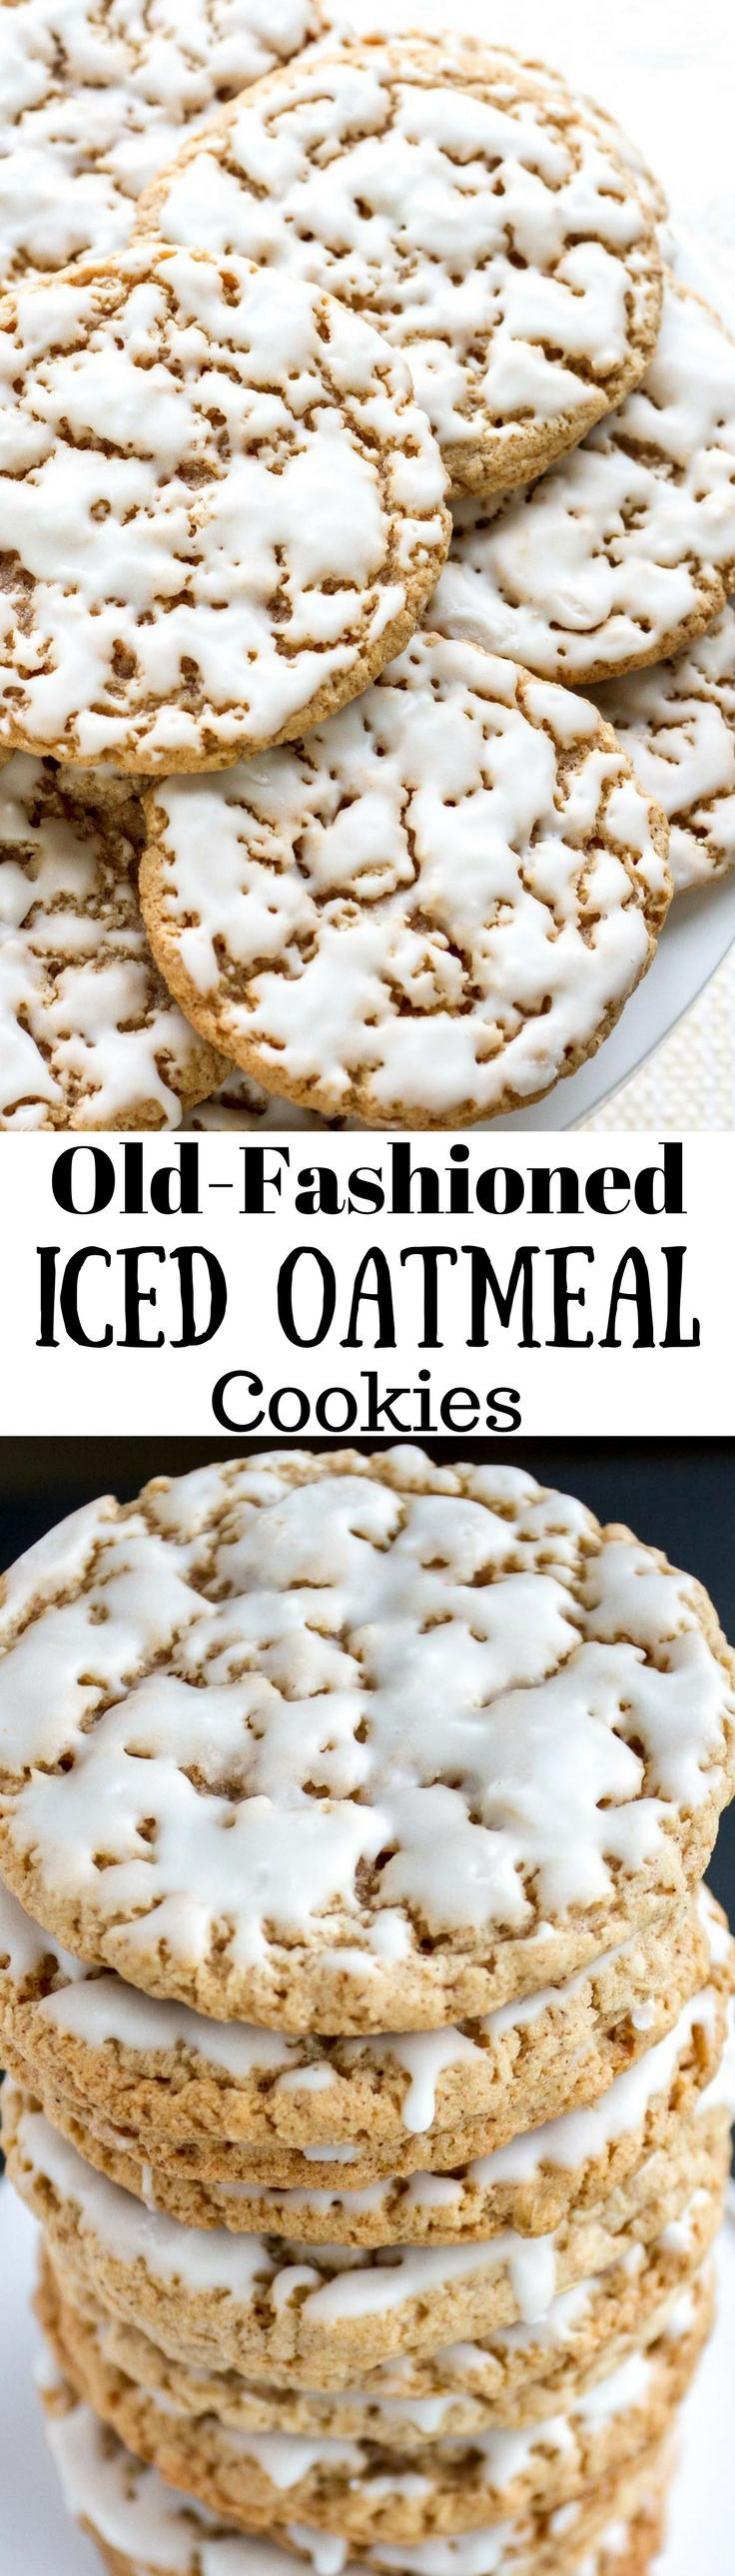 Old-Fashioned Iced Oatmeal Cookies ~ Soft in the middle and crispy on the edges, sweet, but not overly so, and the cinnamon and nutmeg really shine through. A terrific cookie! http://www.savingdessert.com